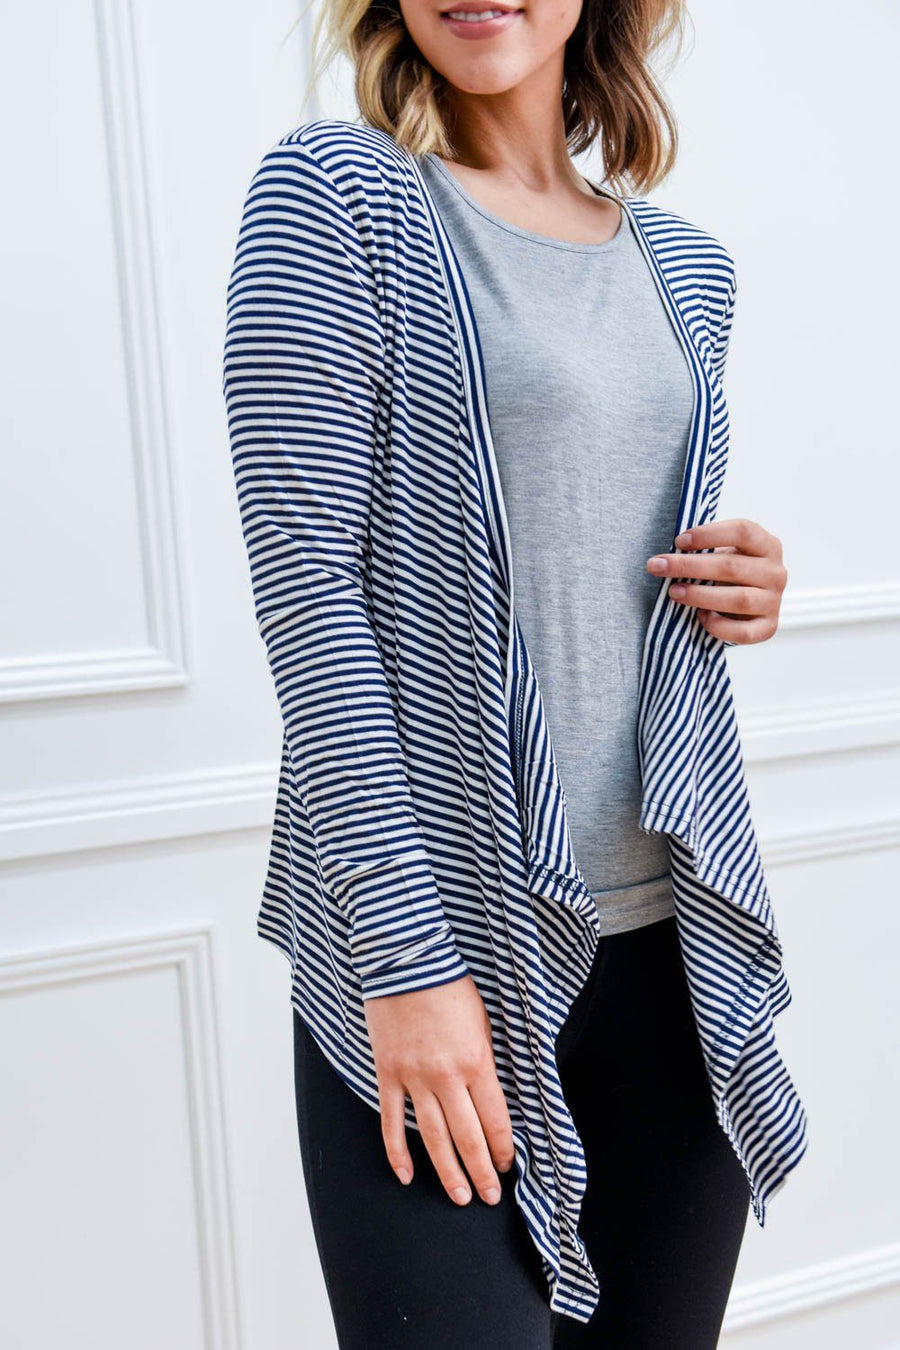 Melbourne Cardigan | Navy / White Striped Cardigan Gray.Label